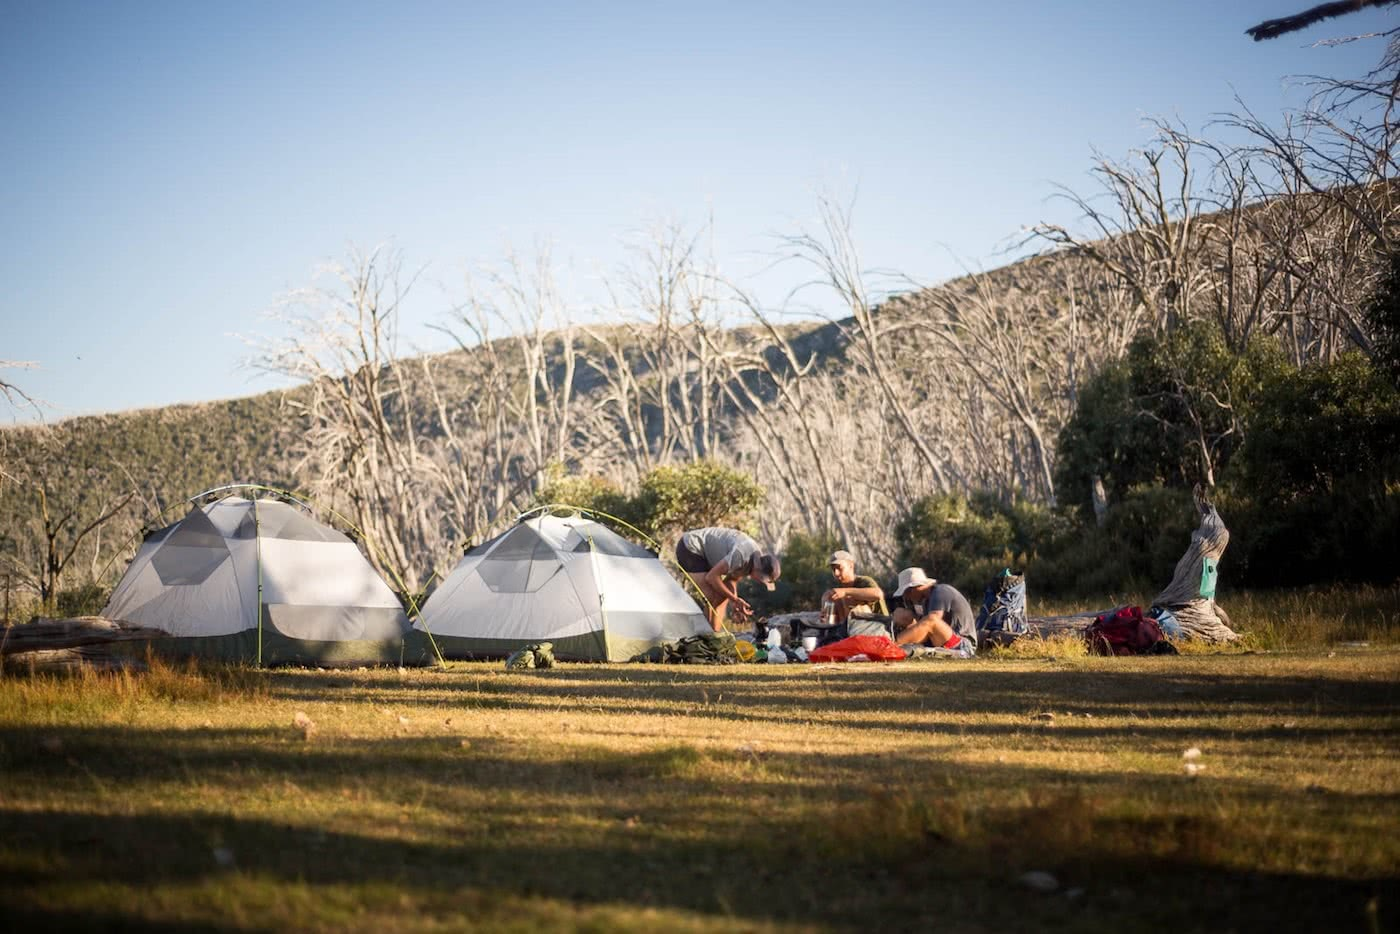 The High Plains on Foot – Four Day Falls Creek Circuit (VIC) Lachlan Fox high plains, camp site, tents, hiking packs